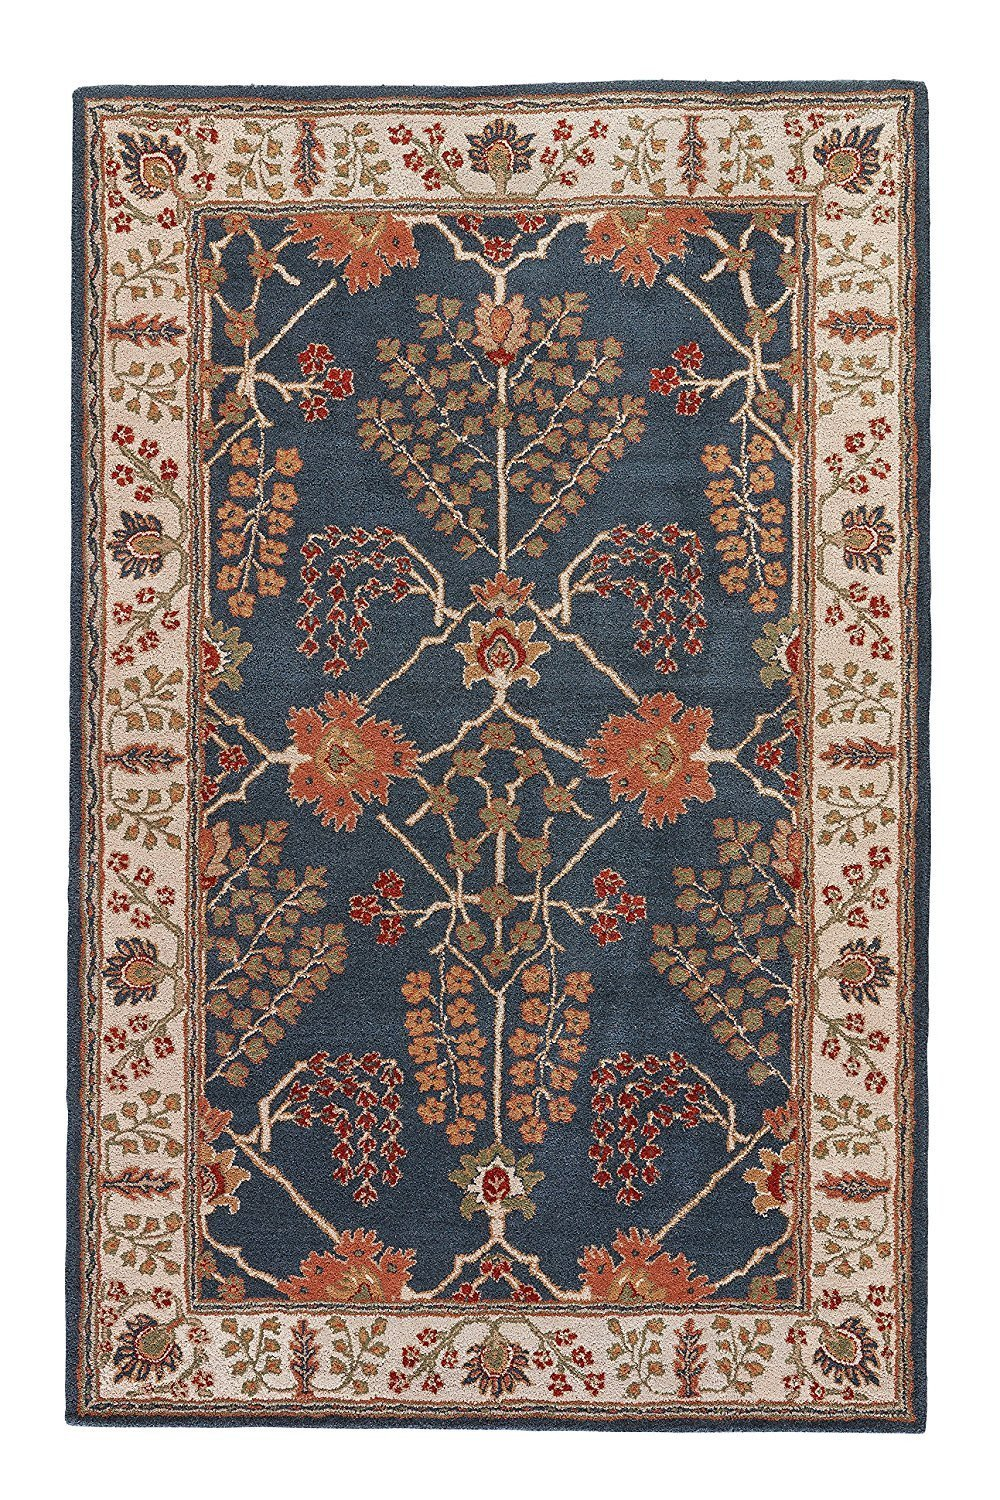 37+ Arts and crafts pattern area rugs information